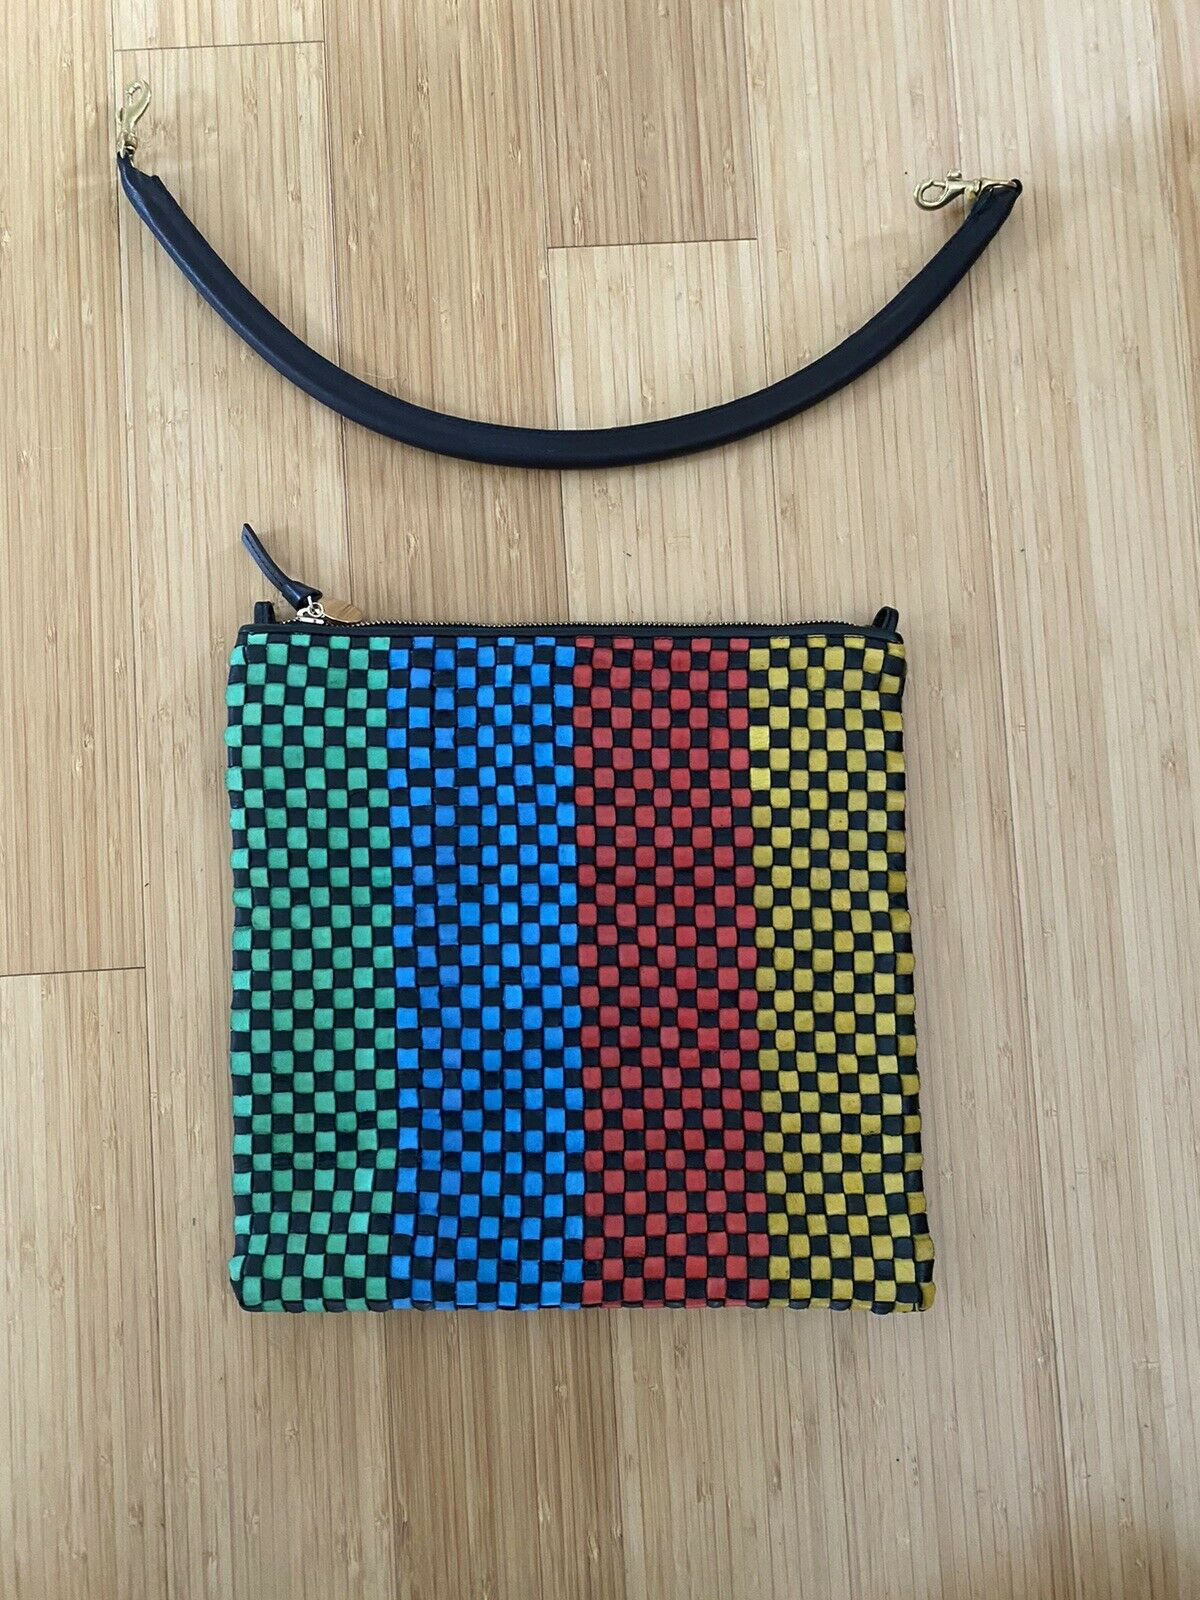 Claire V Woven Leather Clutch Bag - image 3